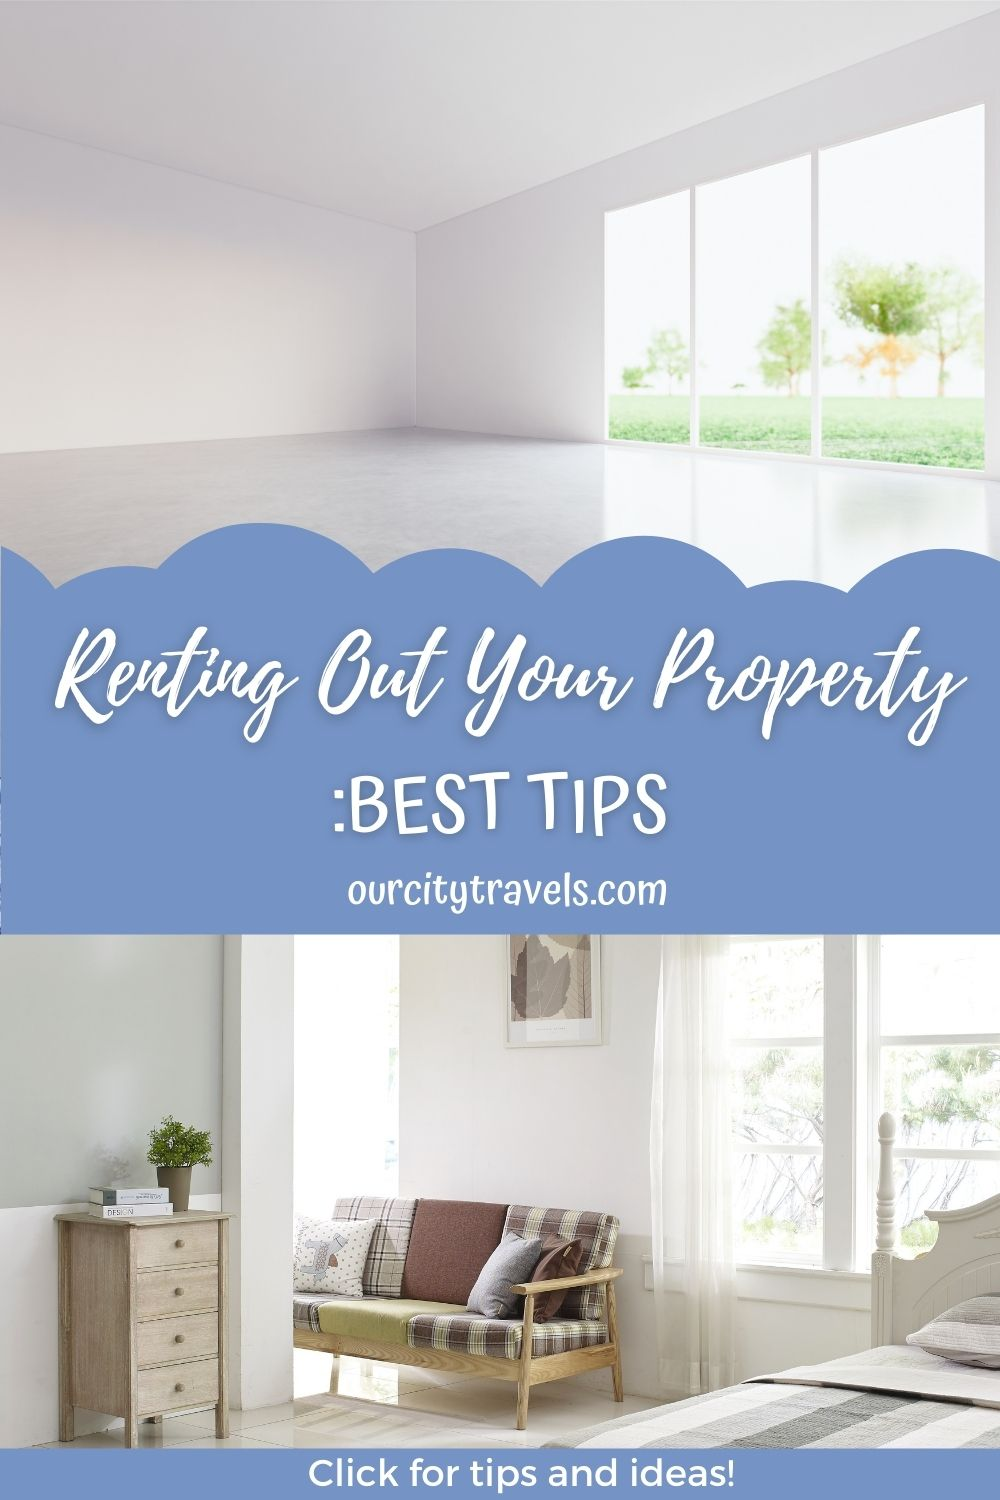 Renting Out Your Property: Best Tips